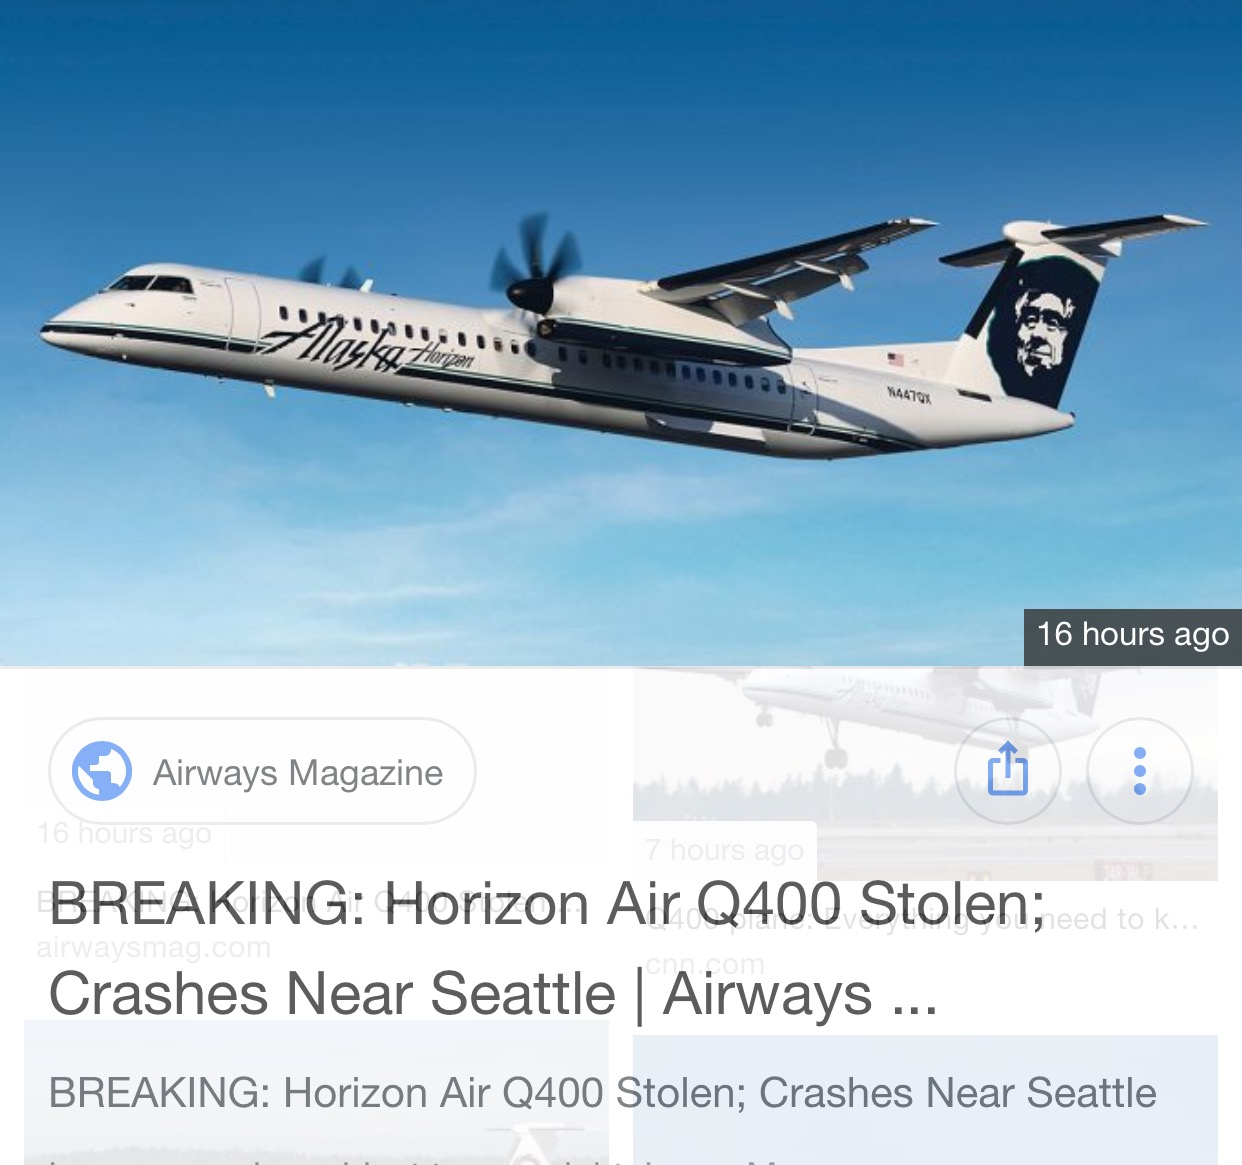 Stolen Regional Airline Aircraft, but how?